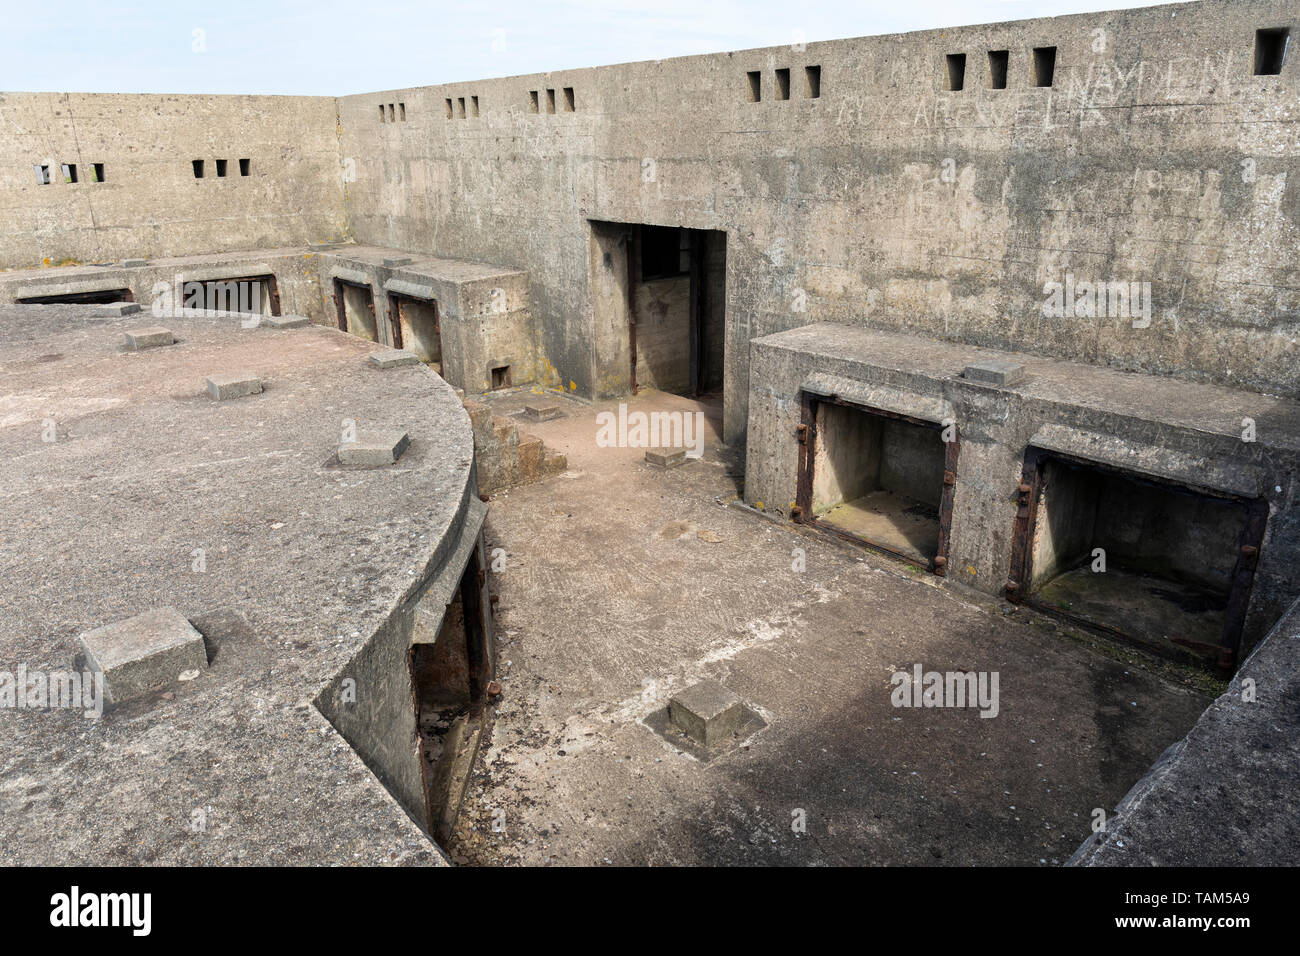 Brean Down Fort interior, Somerset, England - Stock Image